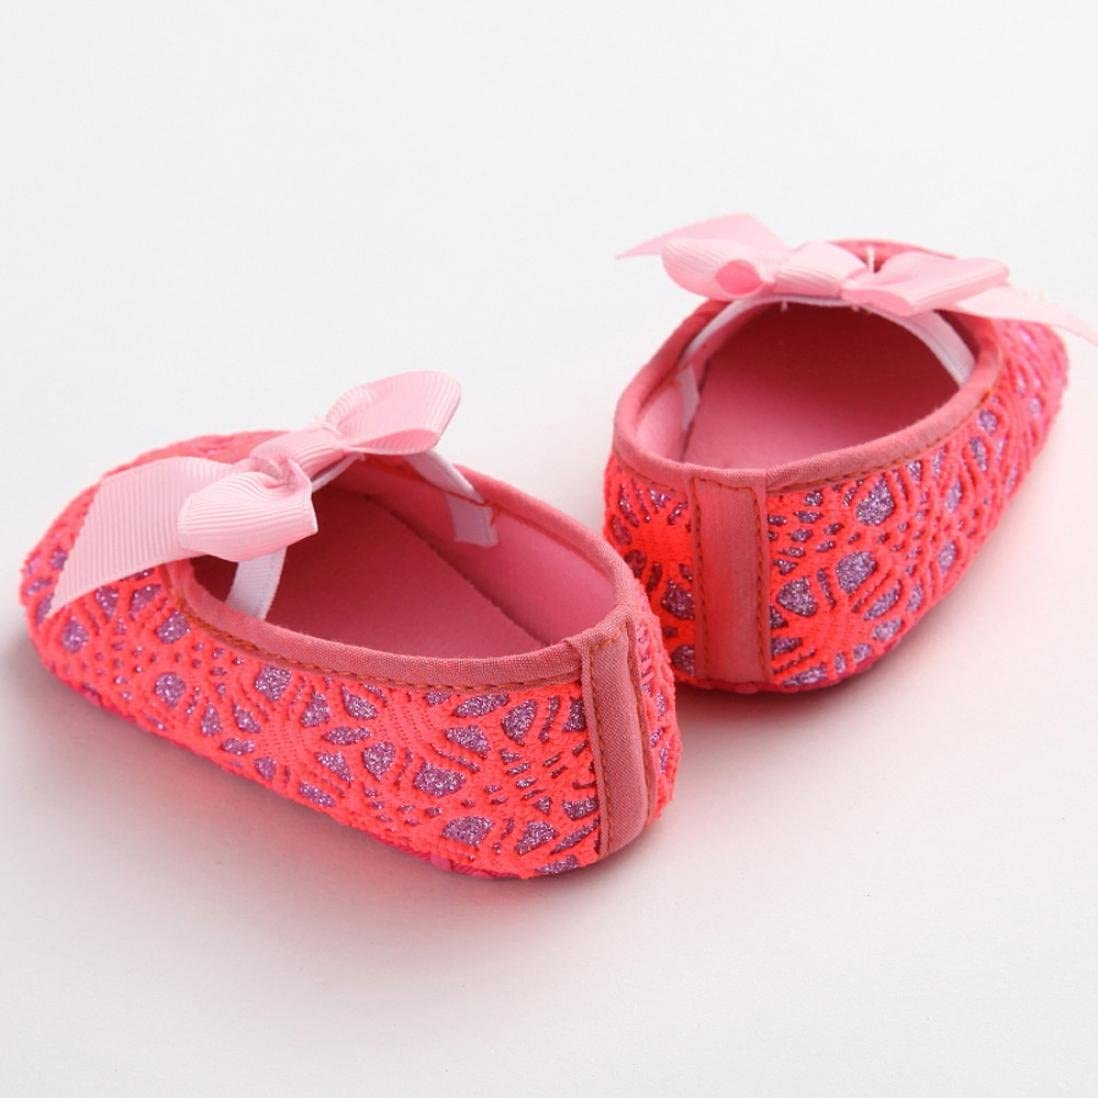 Gotd Newborn Baby Girl Soft Shoes Soft Soled Non-slip Footwear Crib Shoe